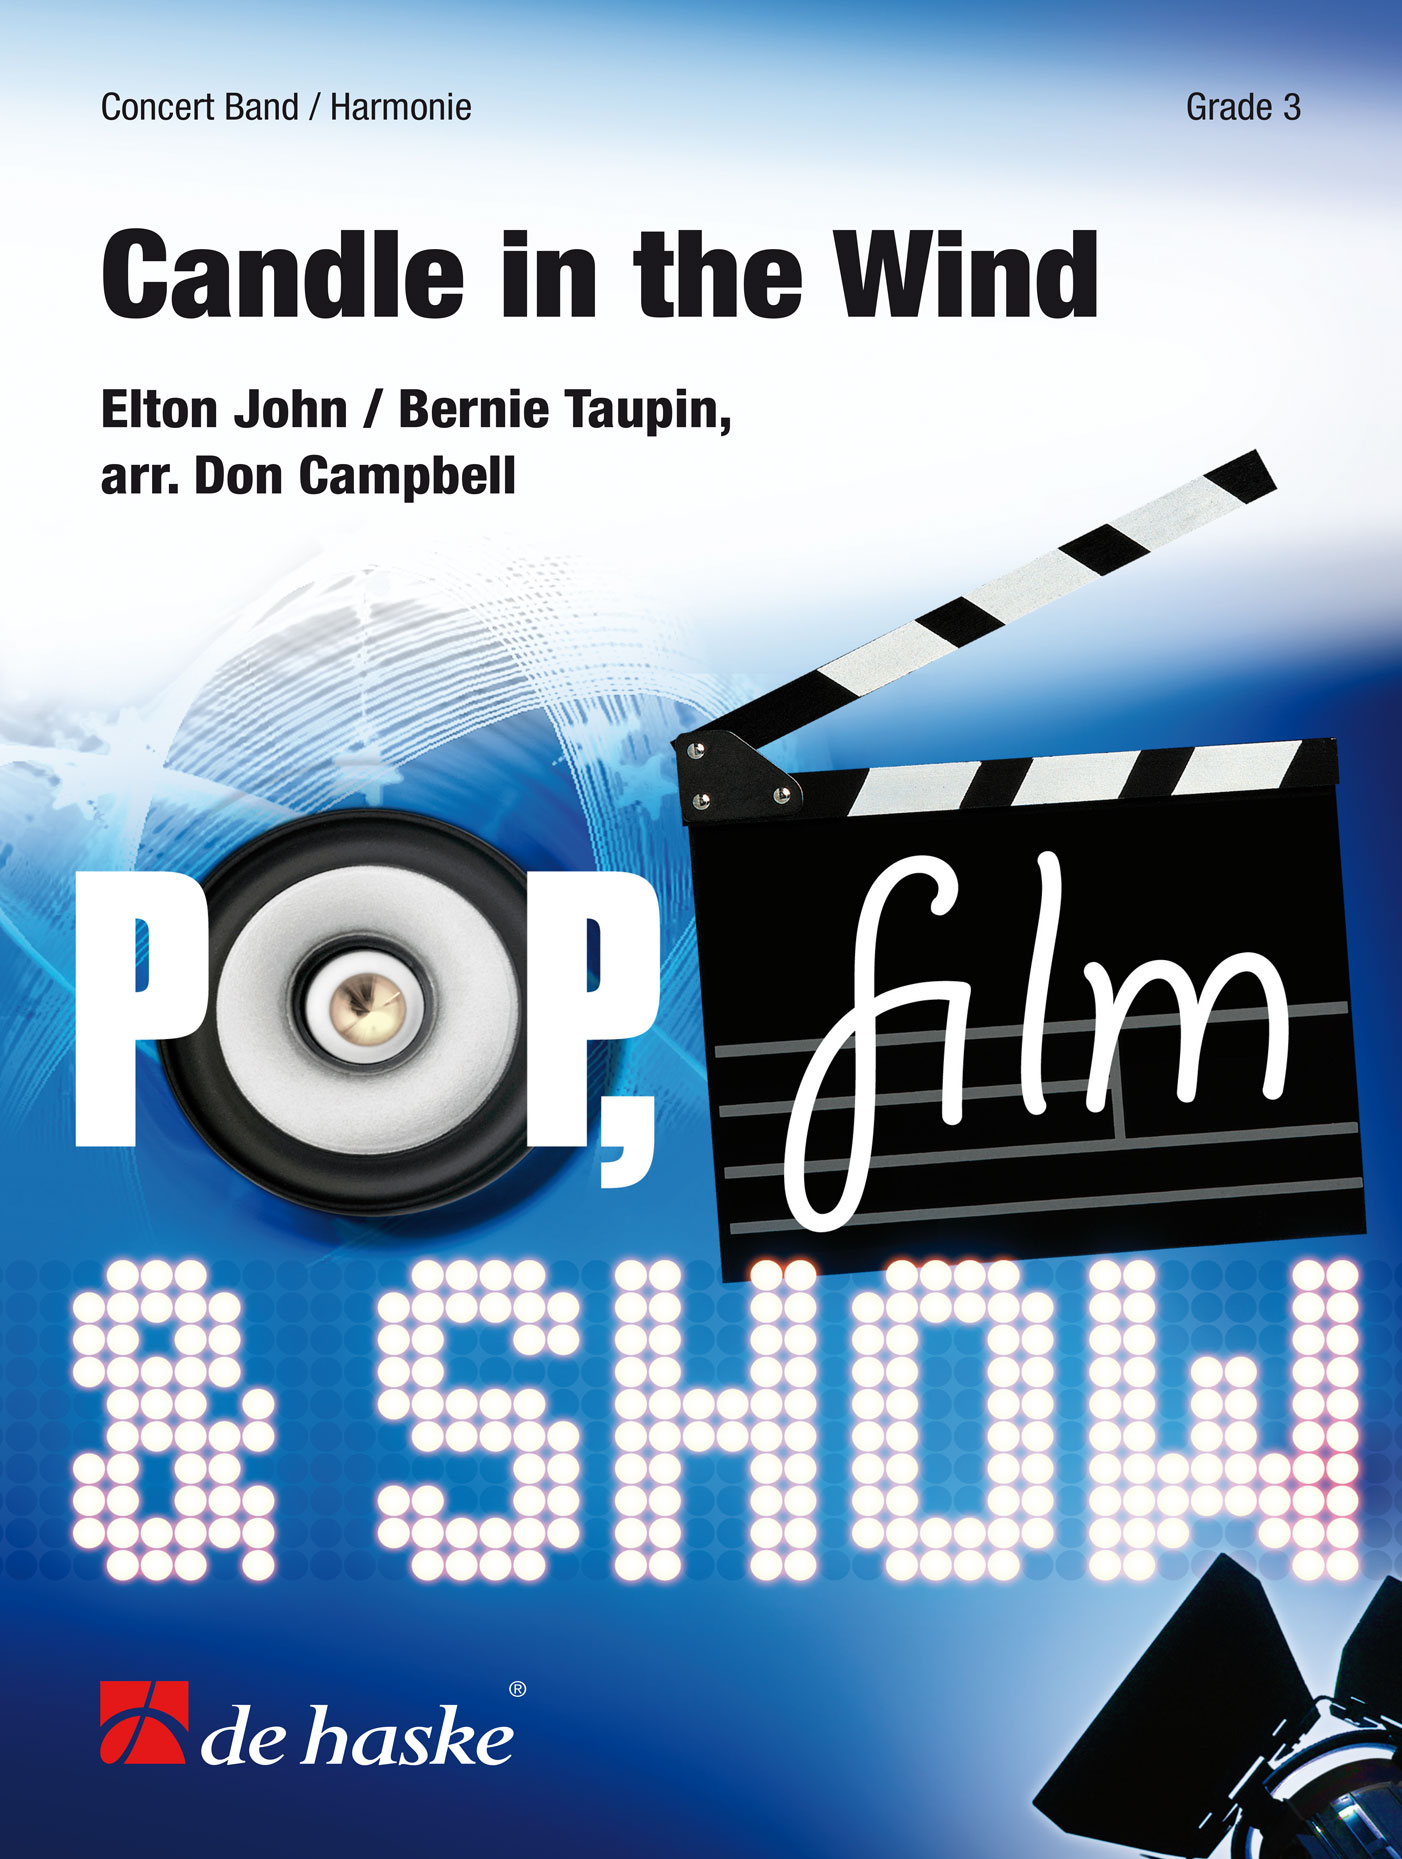 Elton John Bernie Taupin: Candle in the Wind: Concert Band: Score & Parts